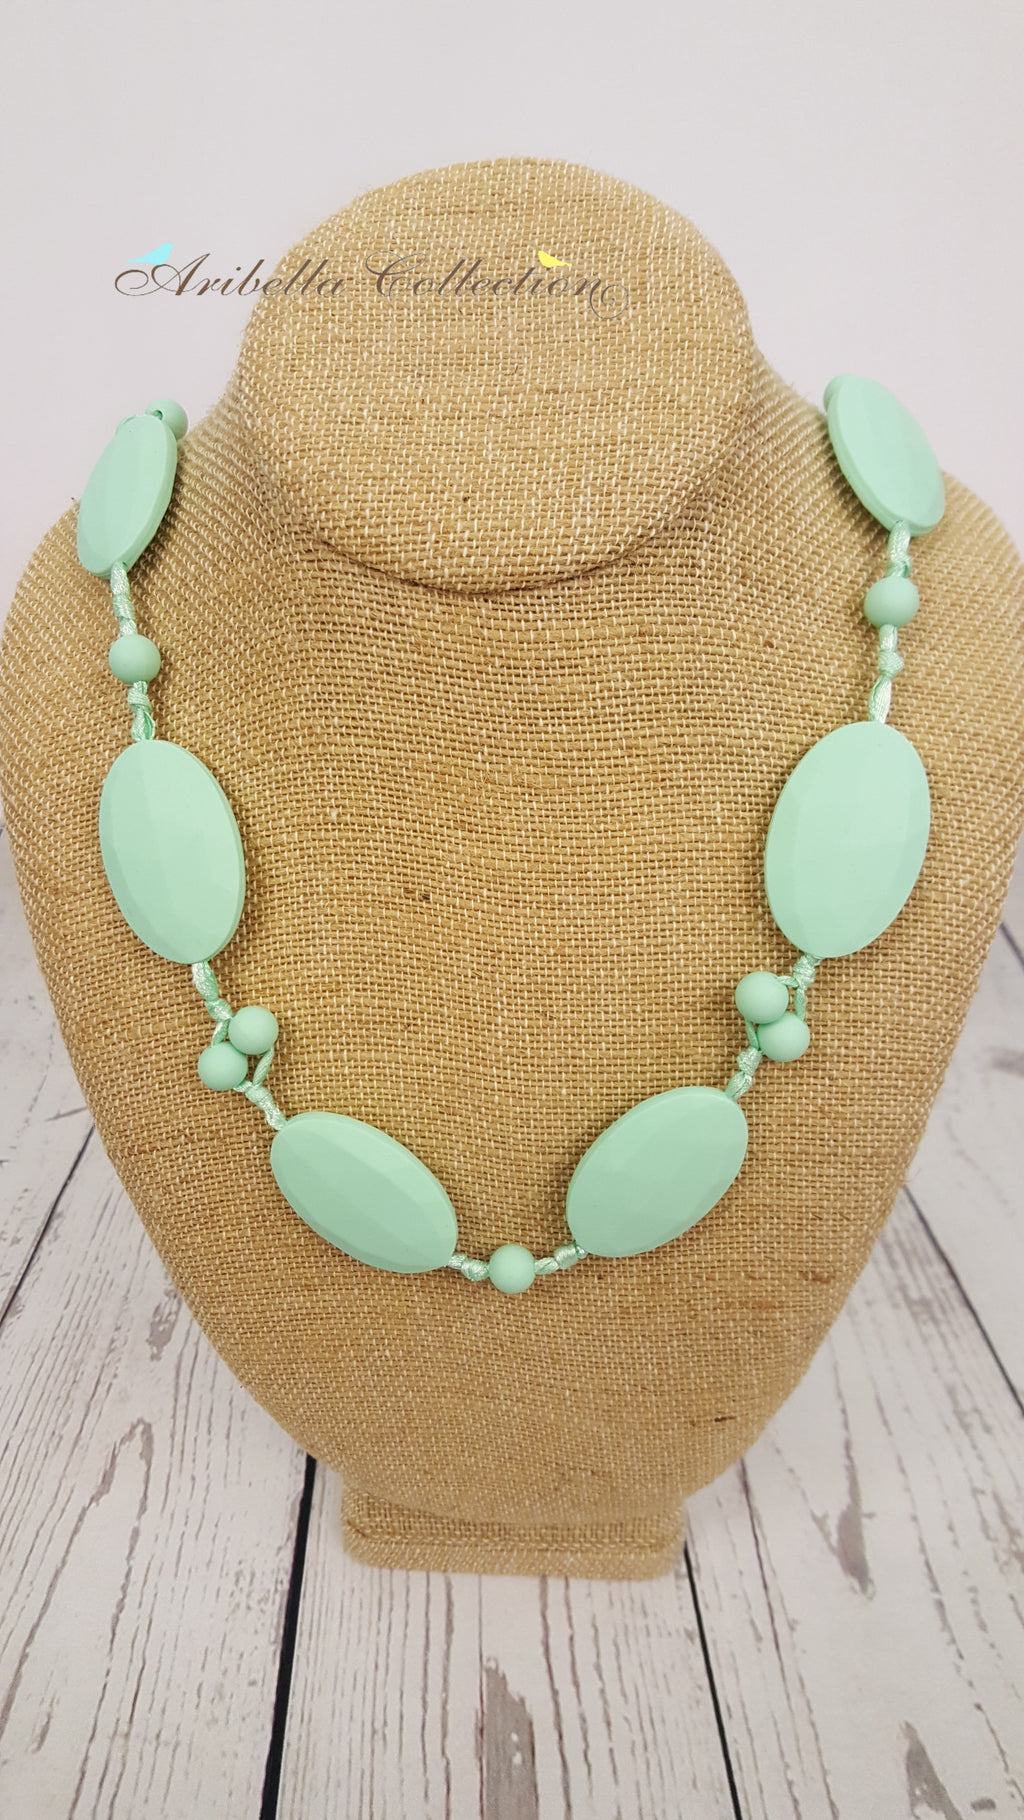 Silicone Necklace - Mint Oval - Aribella Collection